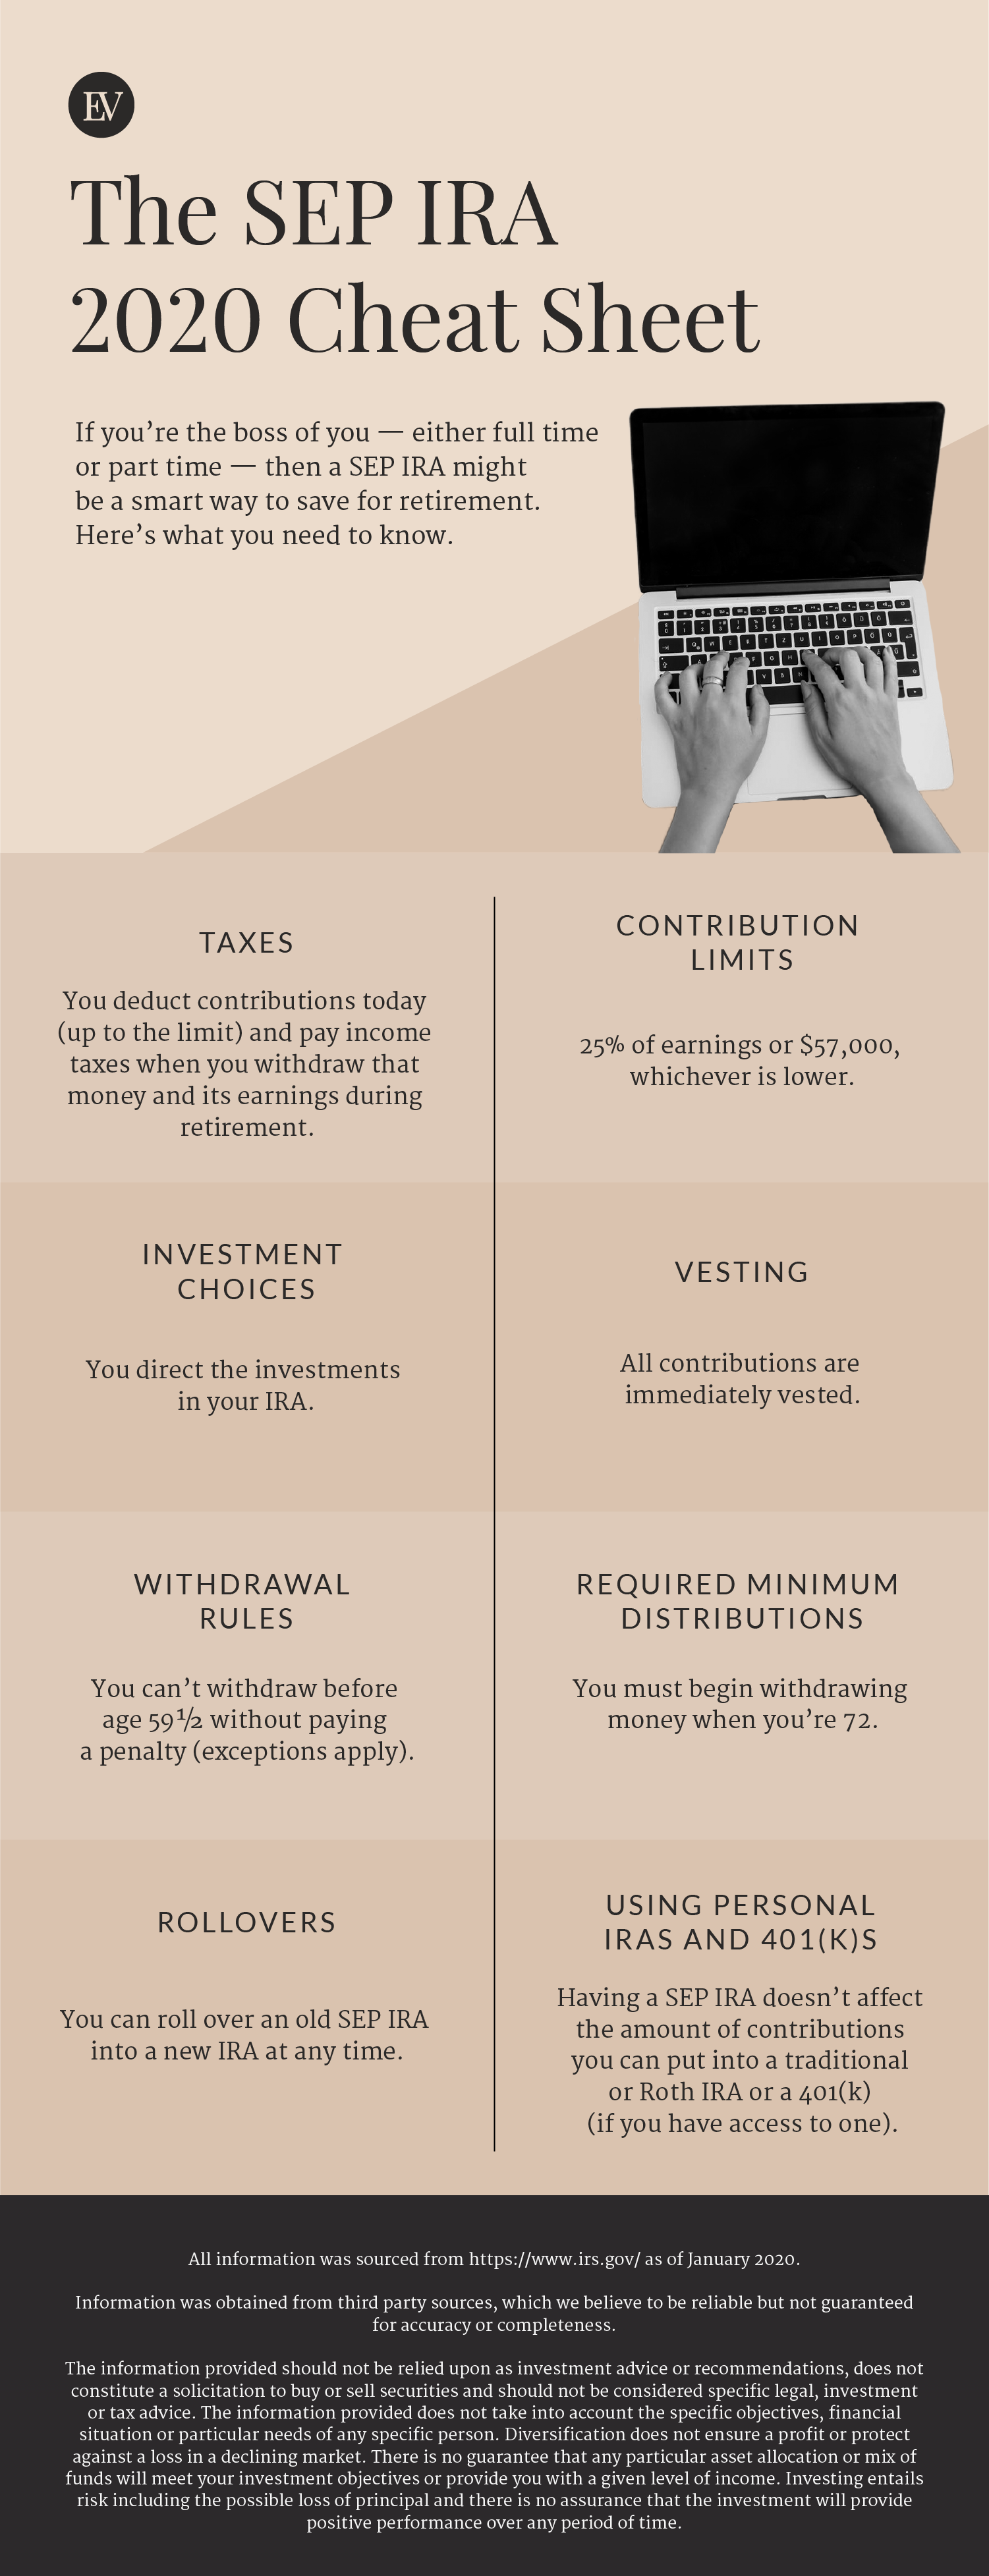 The SEP IRA Cheat Sheet